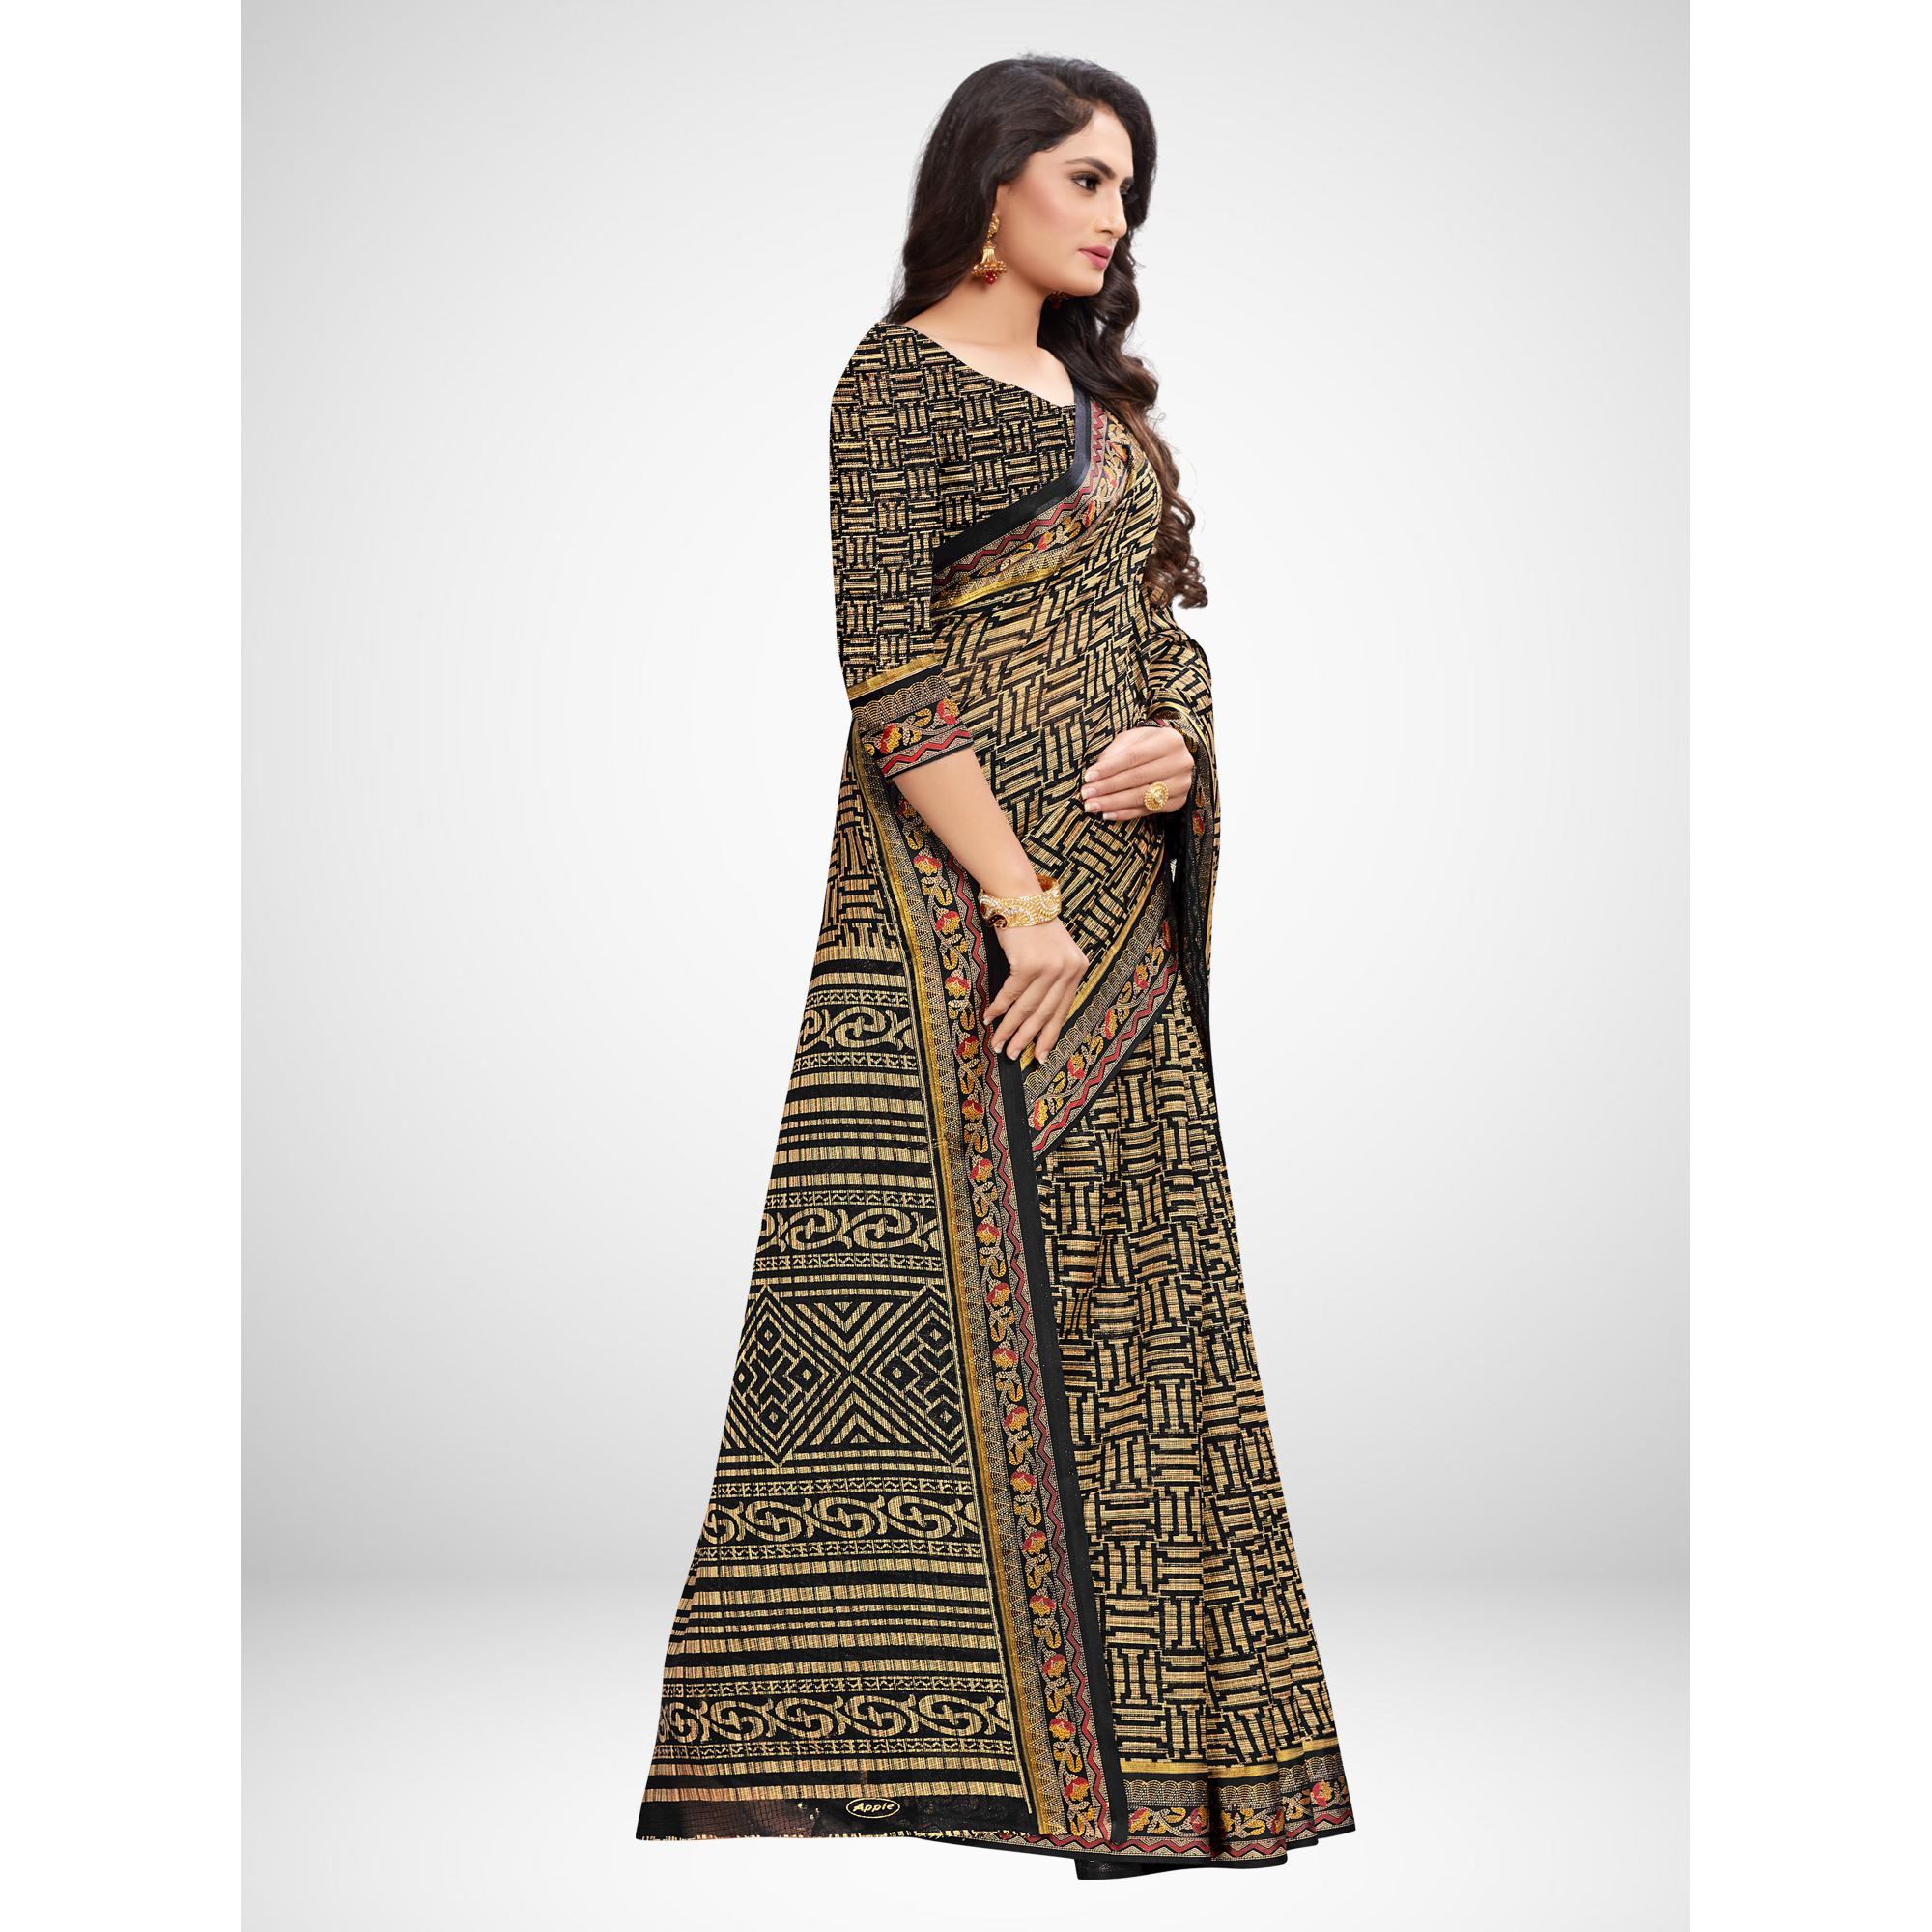 Radiant Black Colored Casual Wear Printed Silk Blend Saree